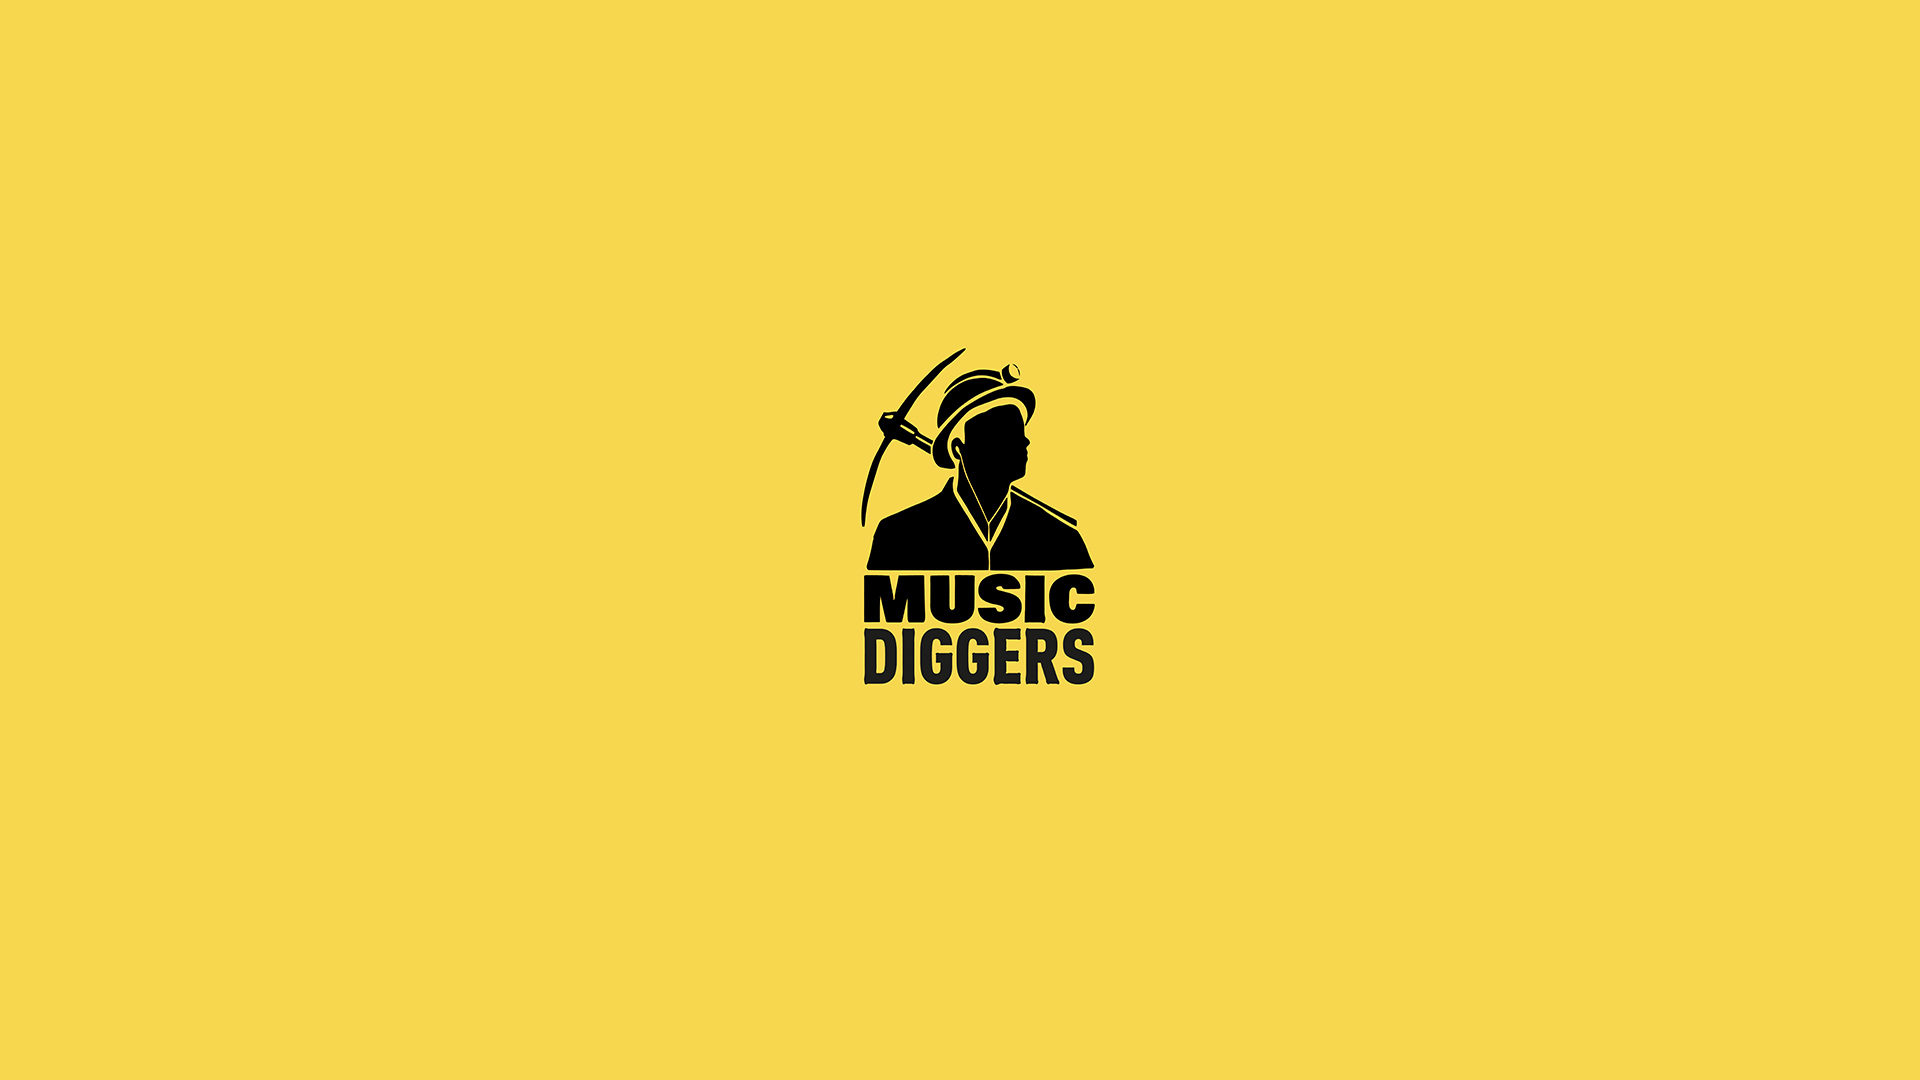 Music Diggers